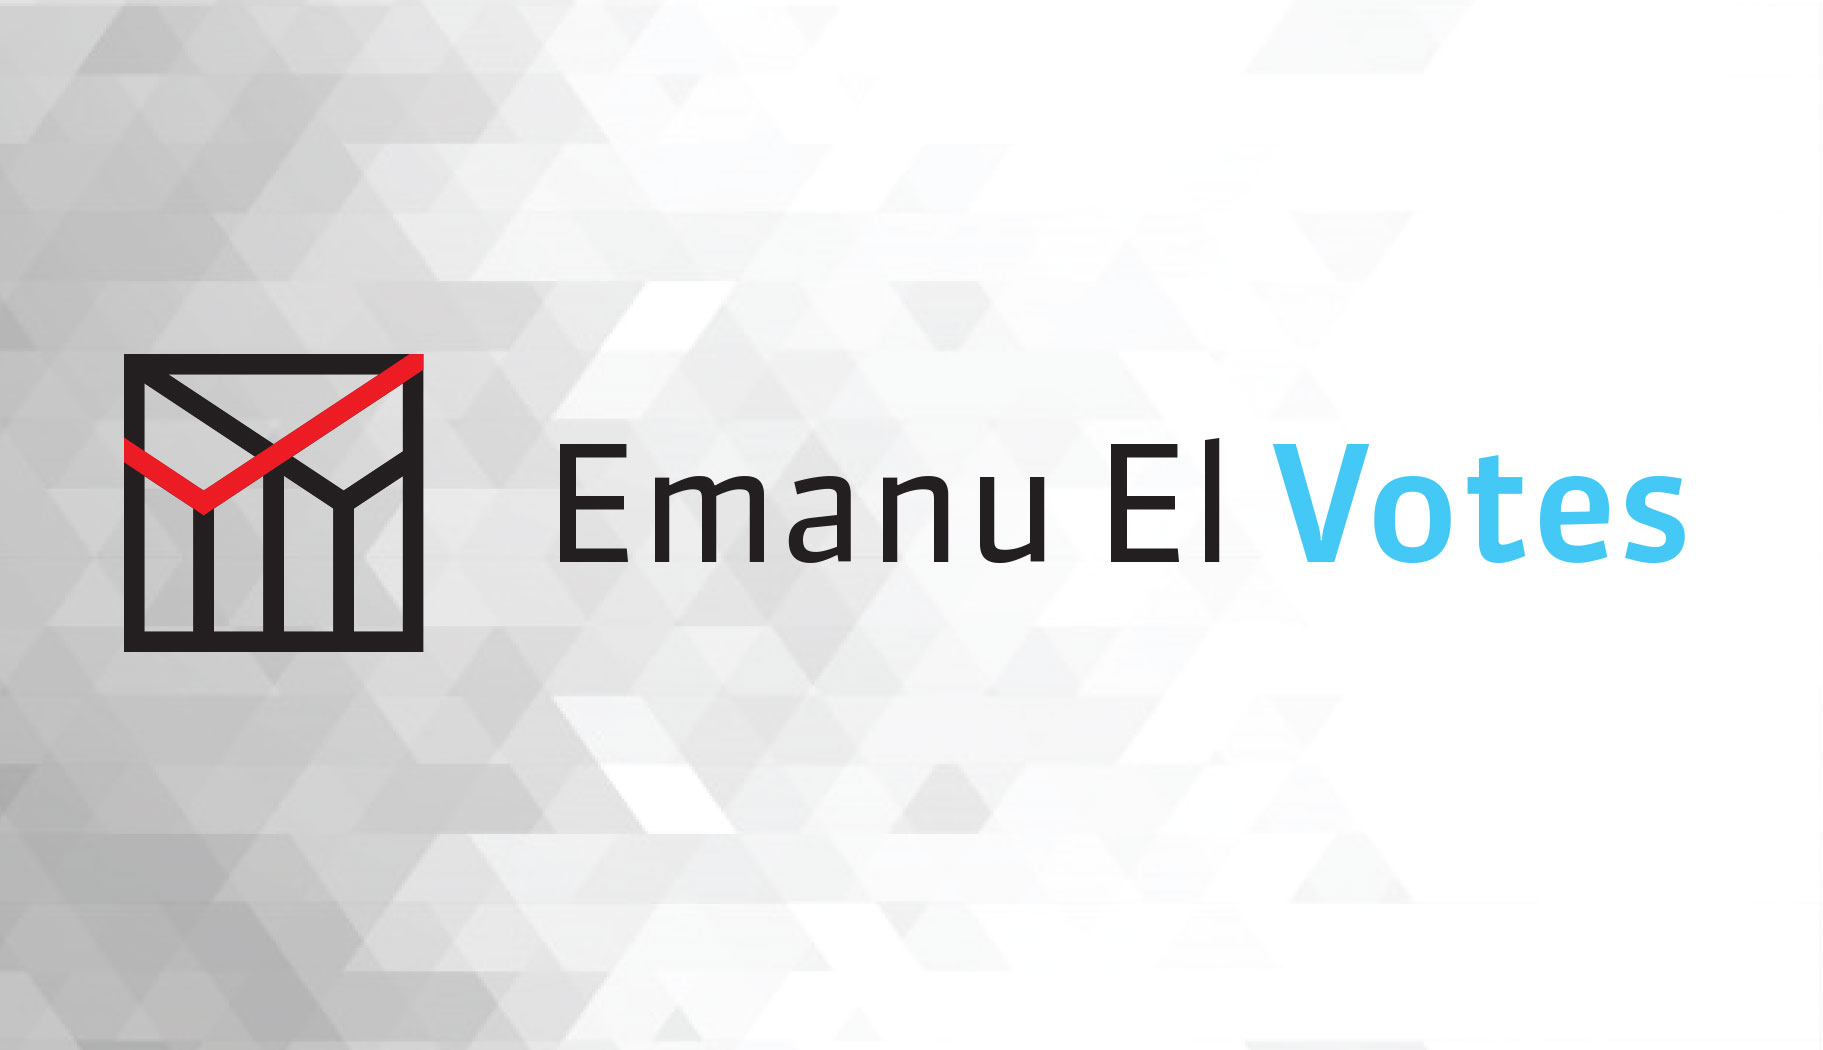 Emanu El Votes